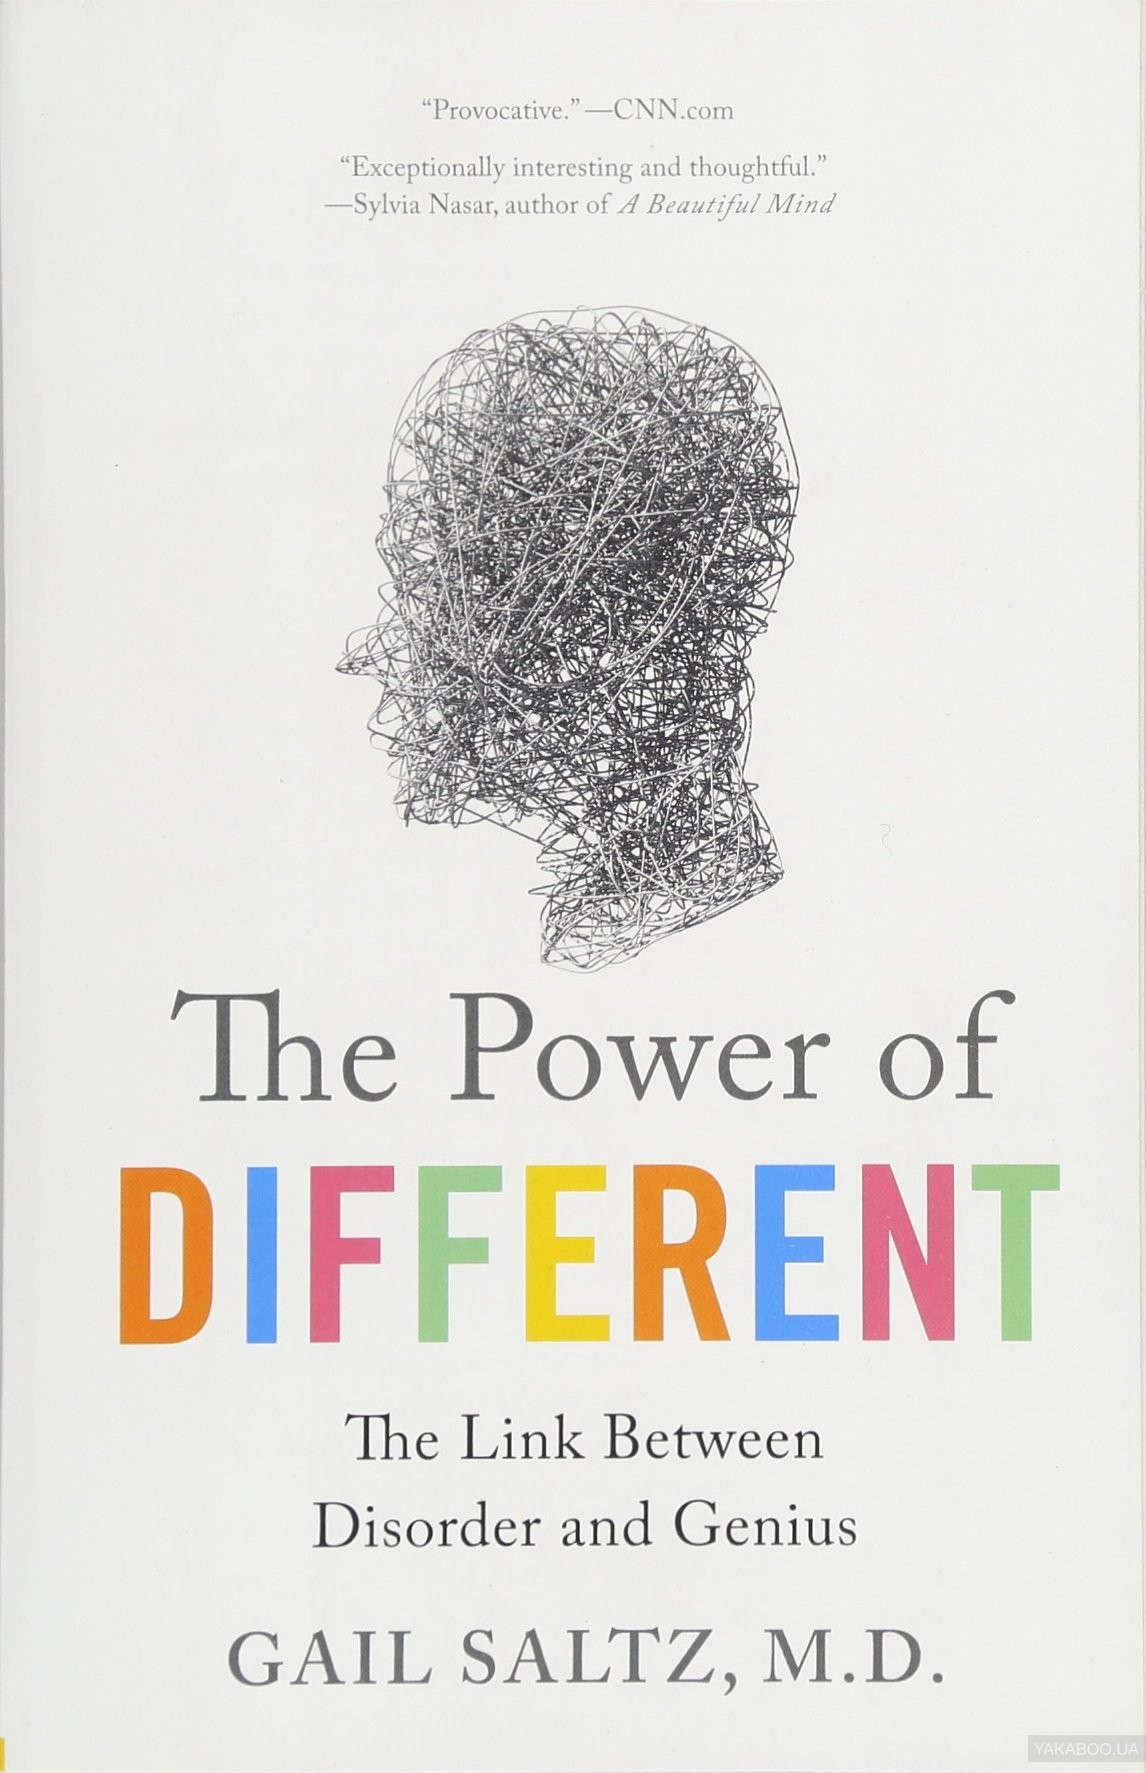 The power of different: the link